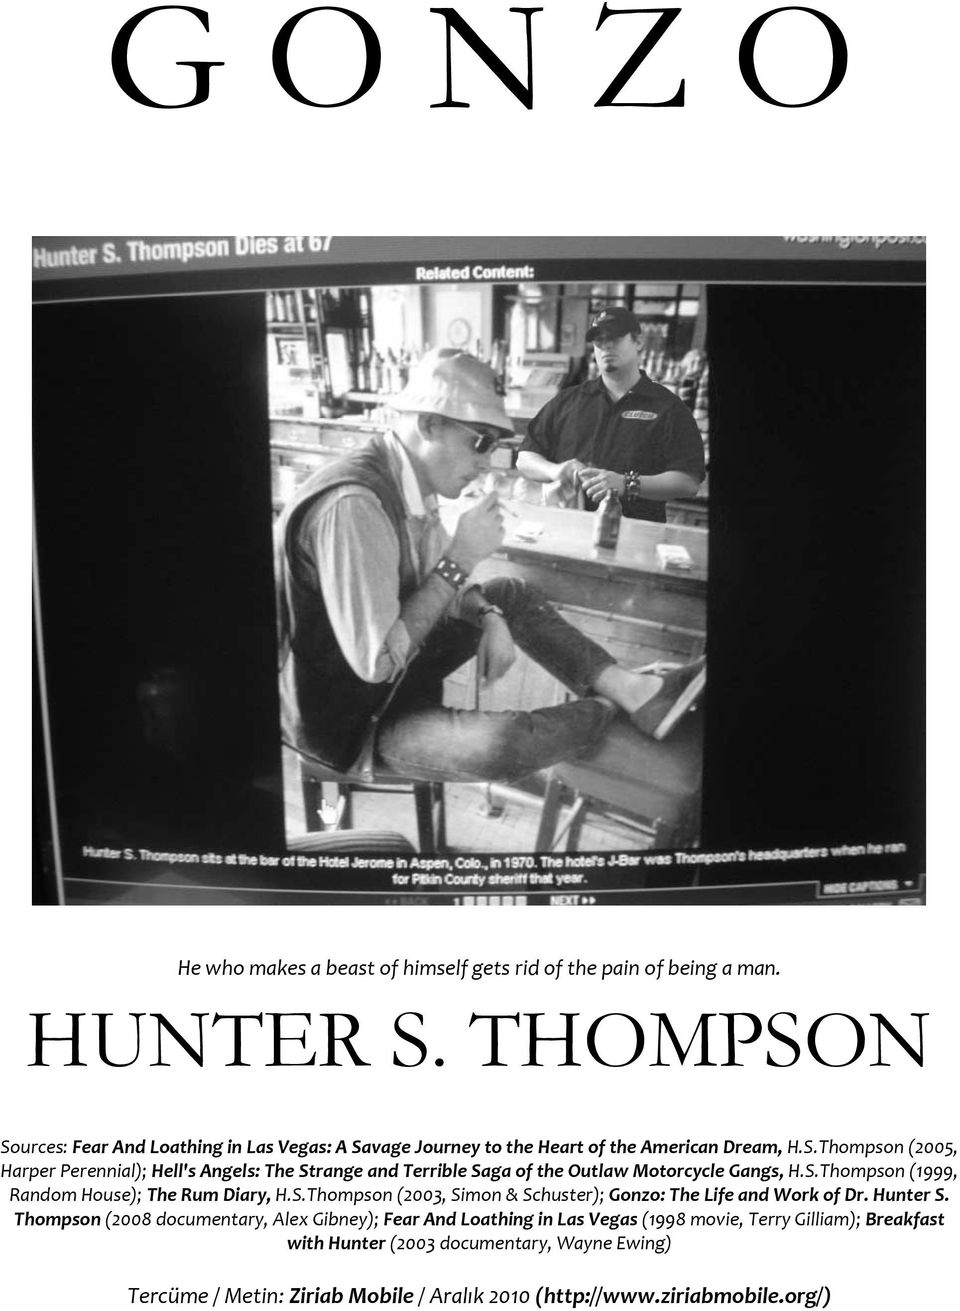 S.Thompson (1999, Random House); The Rum Diary, H.S.Thompson (2003, Simon & Schuster); Gonzo: The Life and Work of Dr. Hunter S.